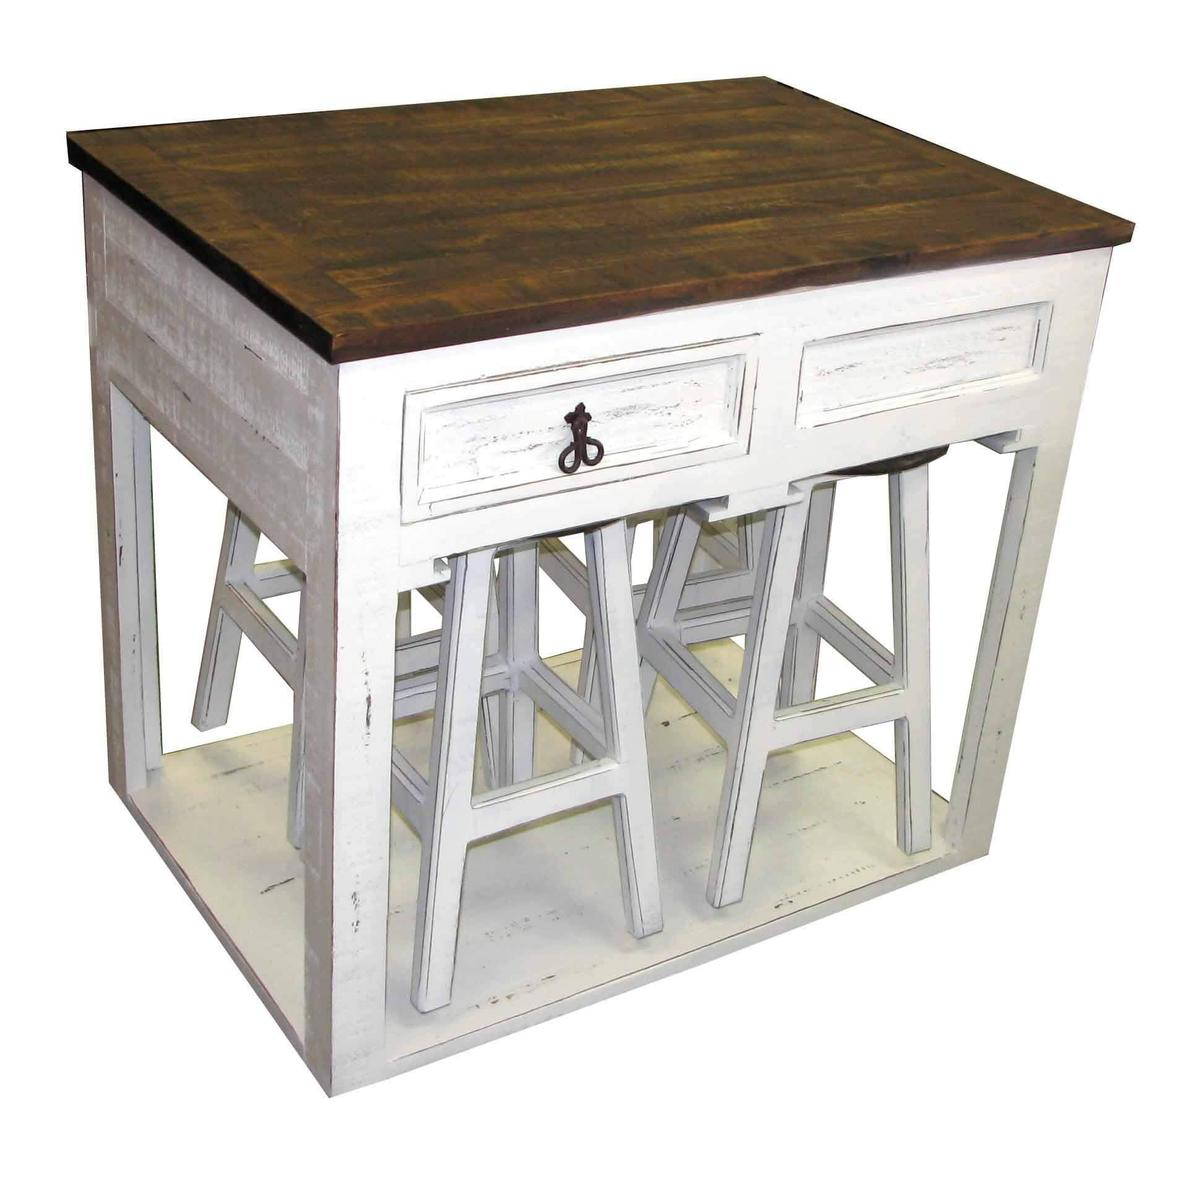 White 2 Drawer Kitchen Island with 4 Barstools -Also available in Aqua, Red, Industrial and White Lava Gray Top